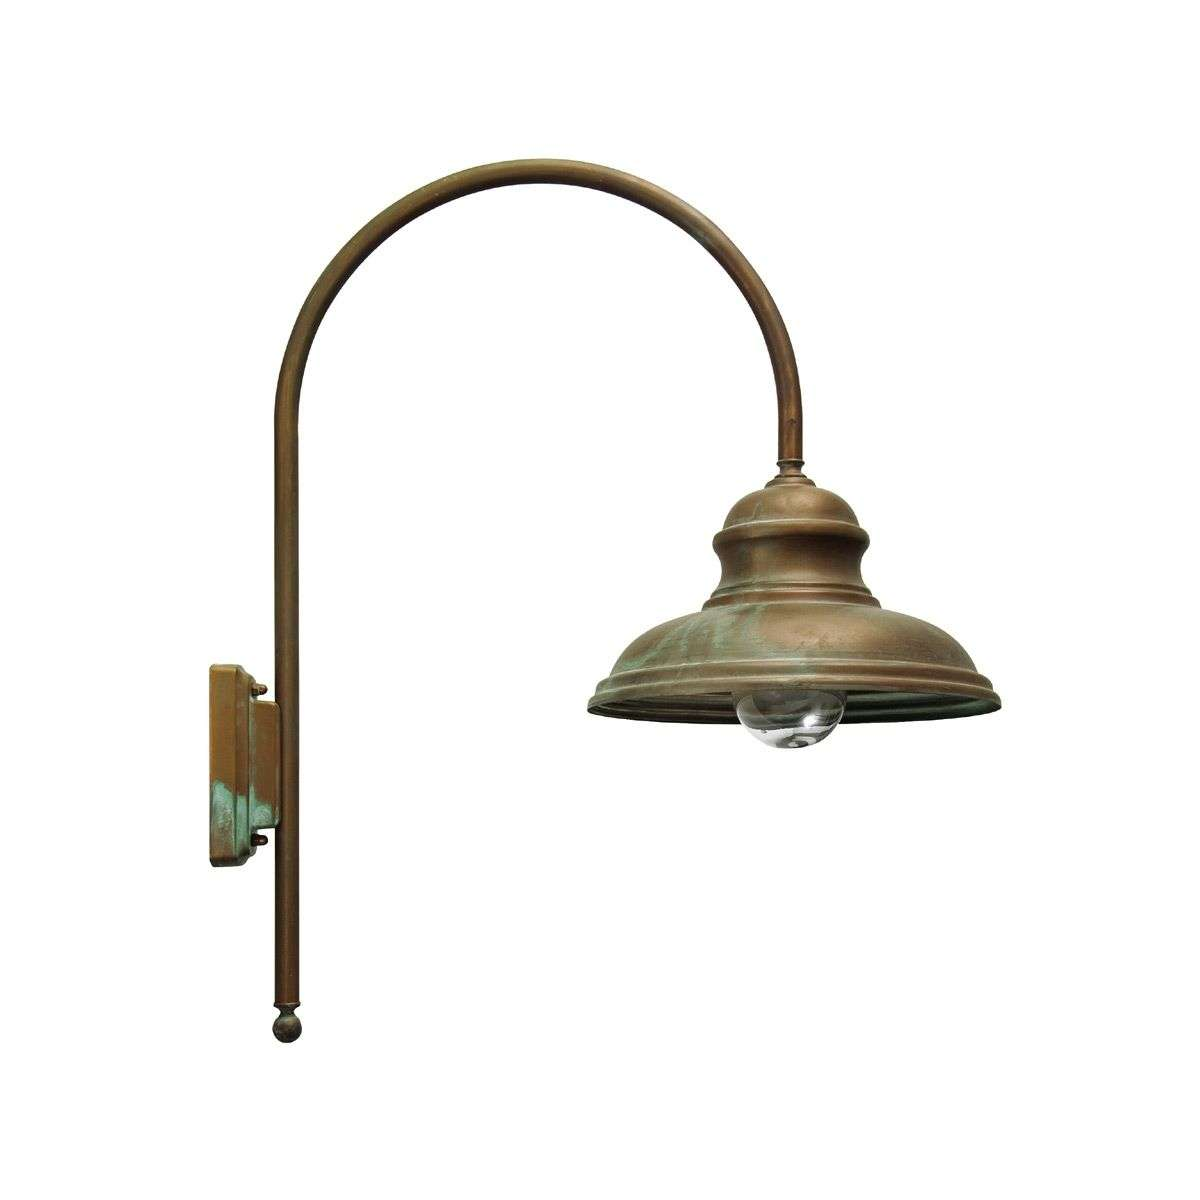 Antique outdoor wall light luca lights antique outdoor wall light luca 52 cm 6515184 31 aloadofball Images